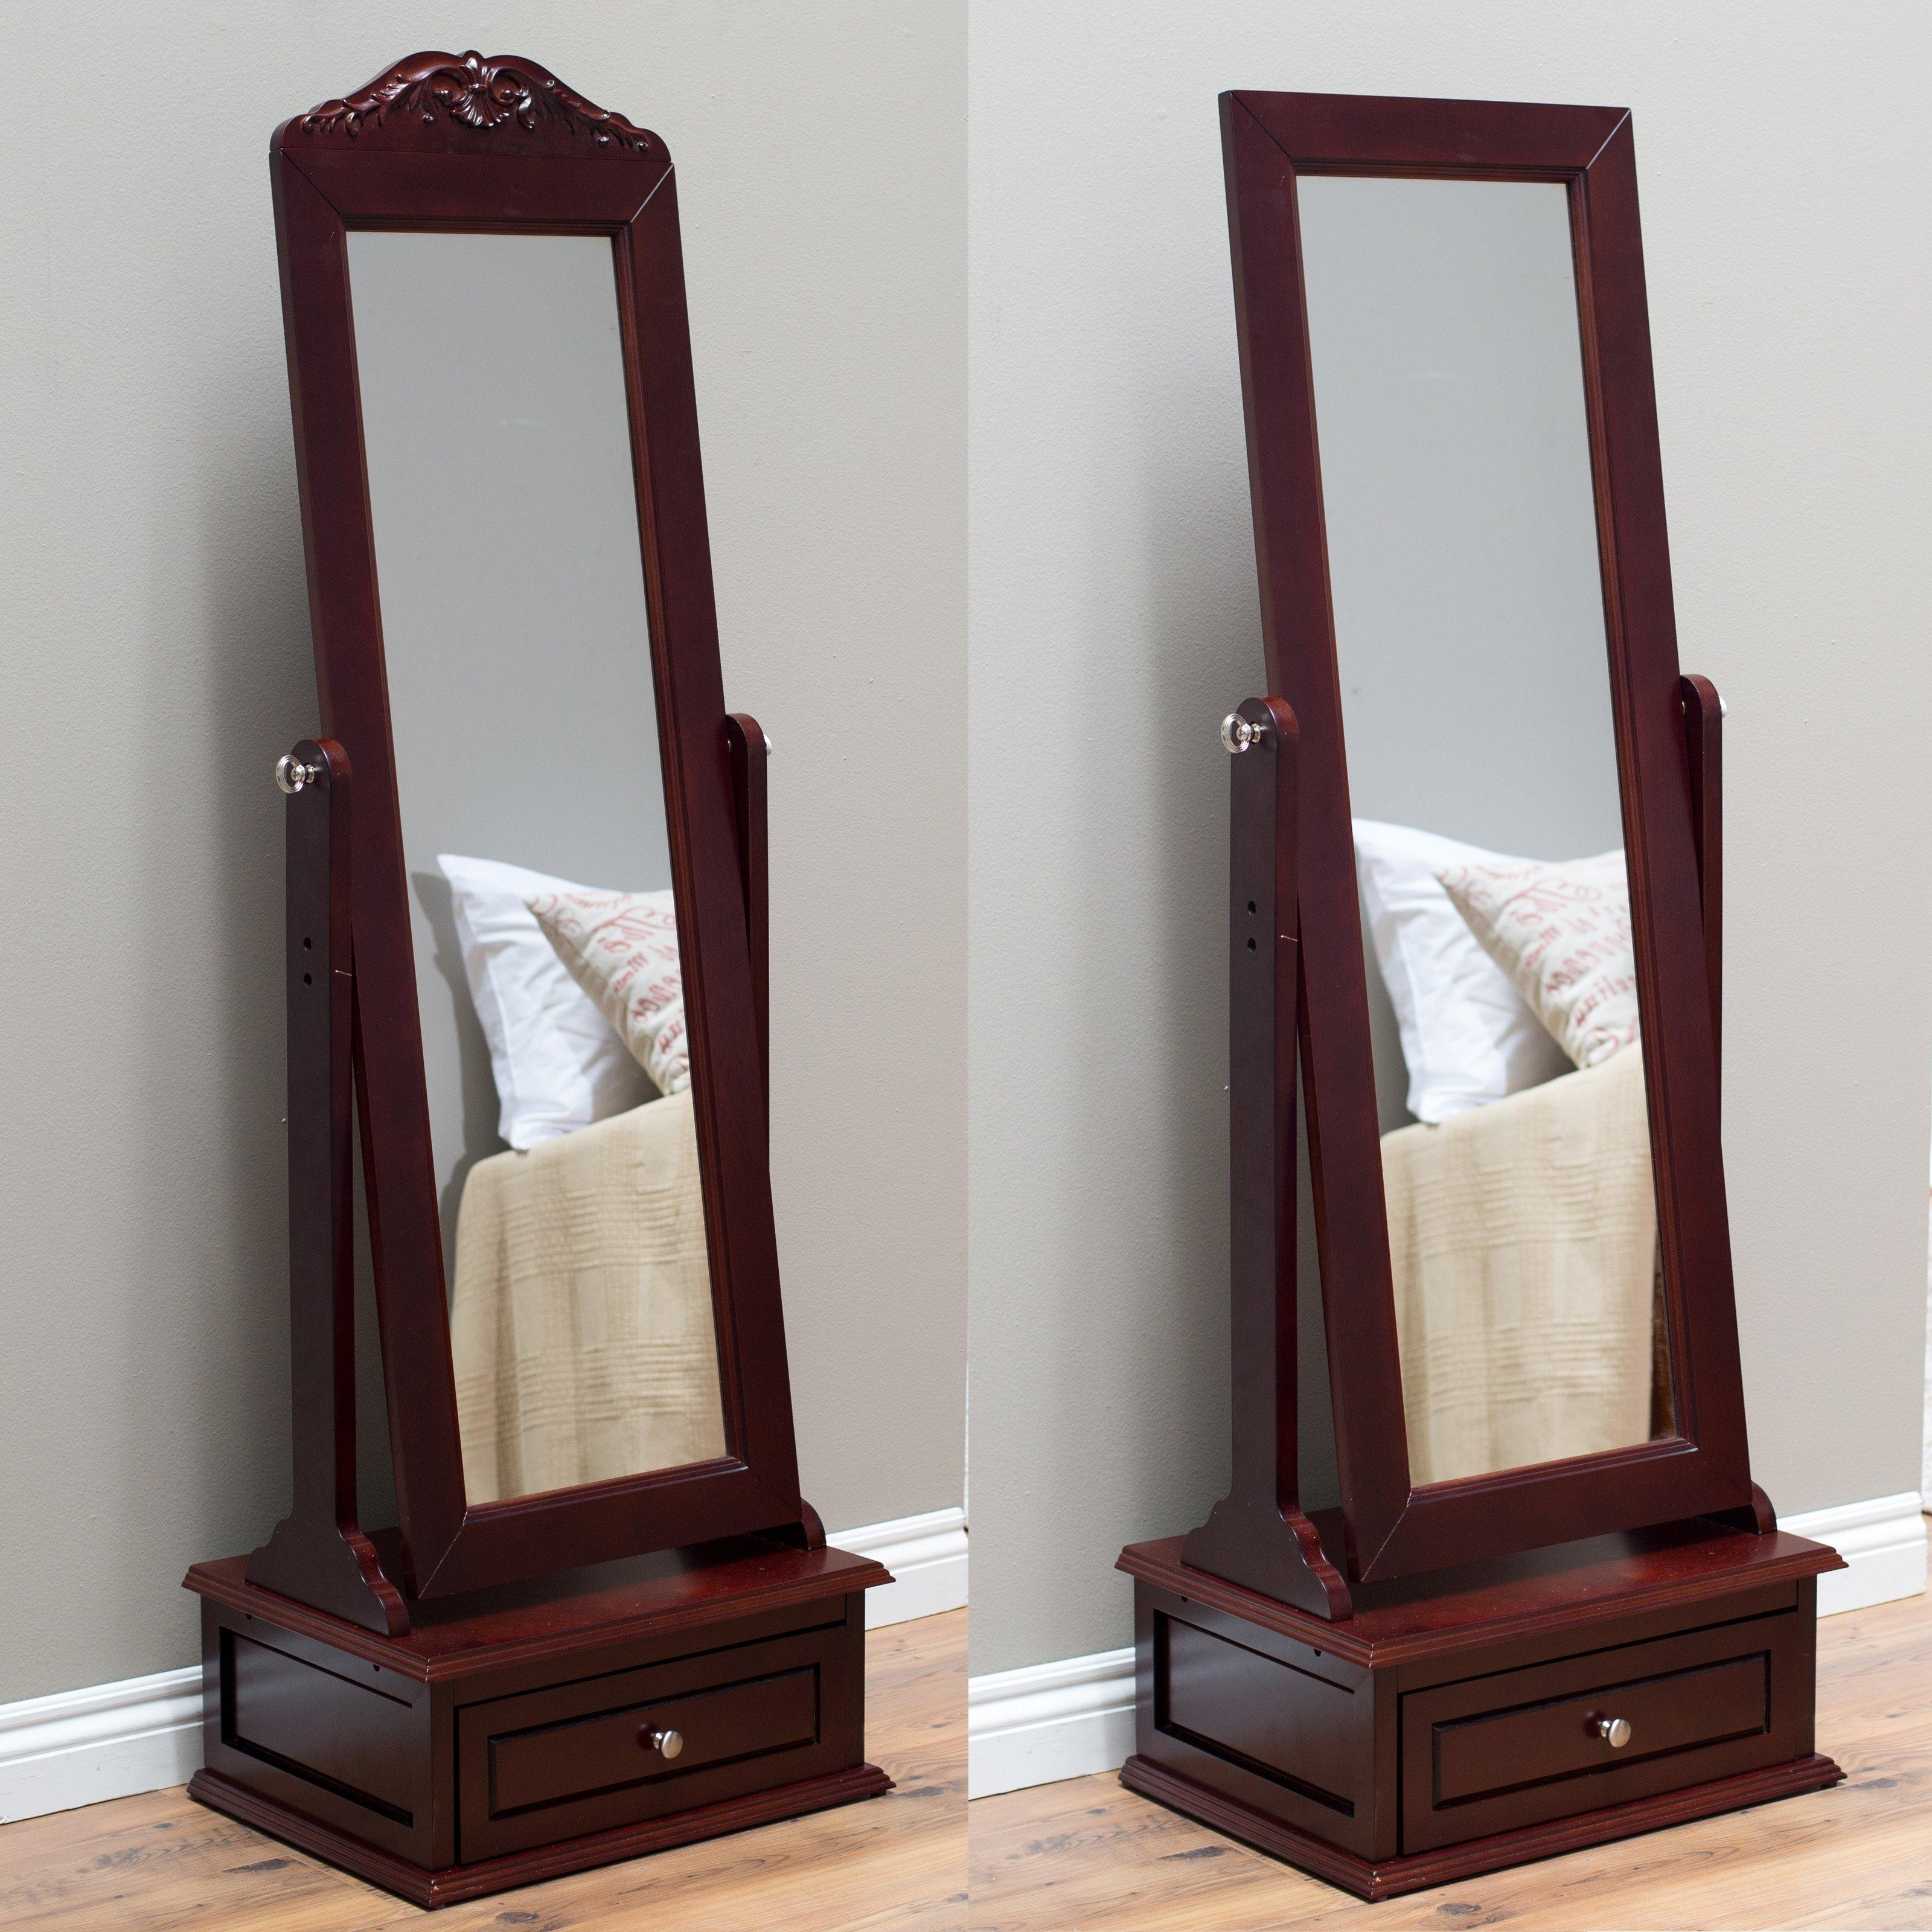 Belham Living Removable Decorative Top Cheval Mirror – Cherry For Full Length Cheval Mirror (Image 4 of 20)